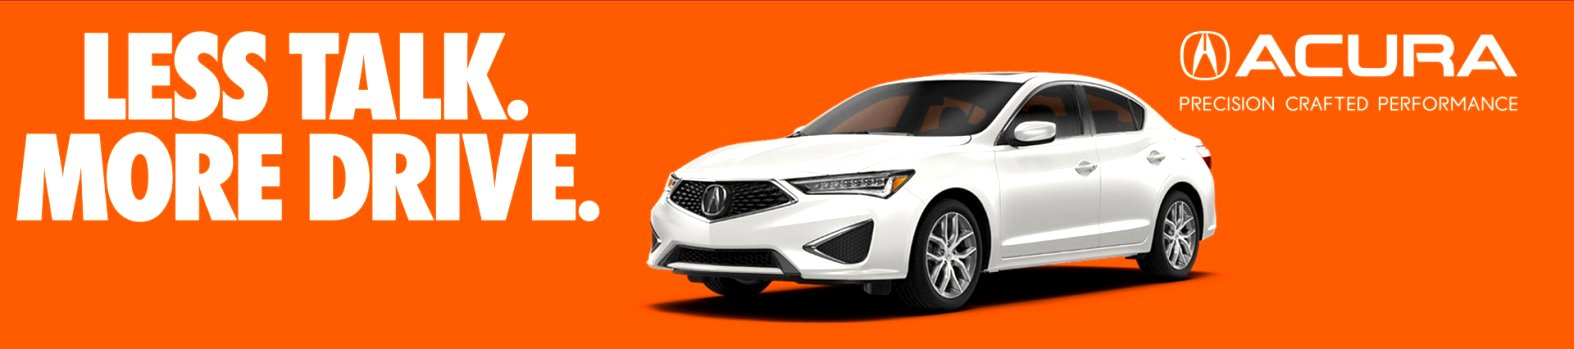 acura black friday deals 2020 Configurations